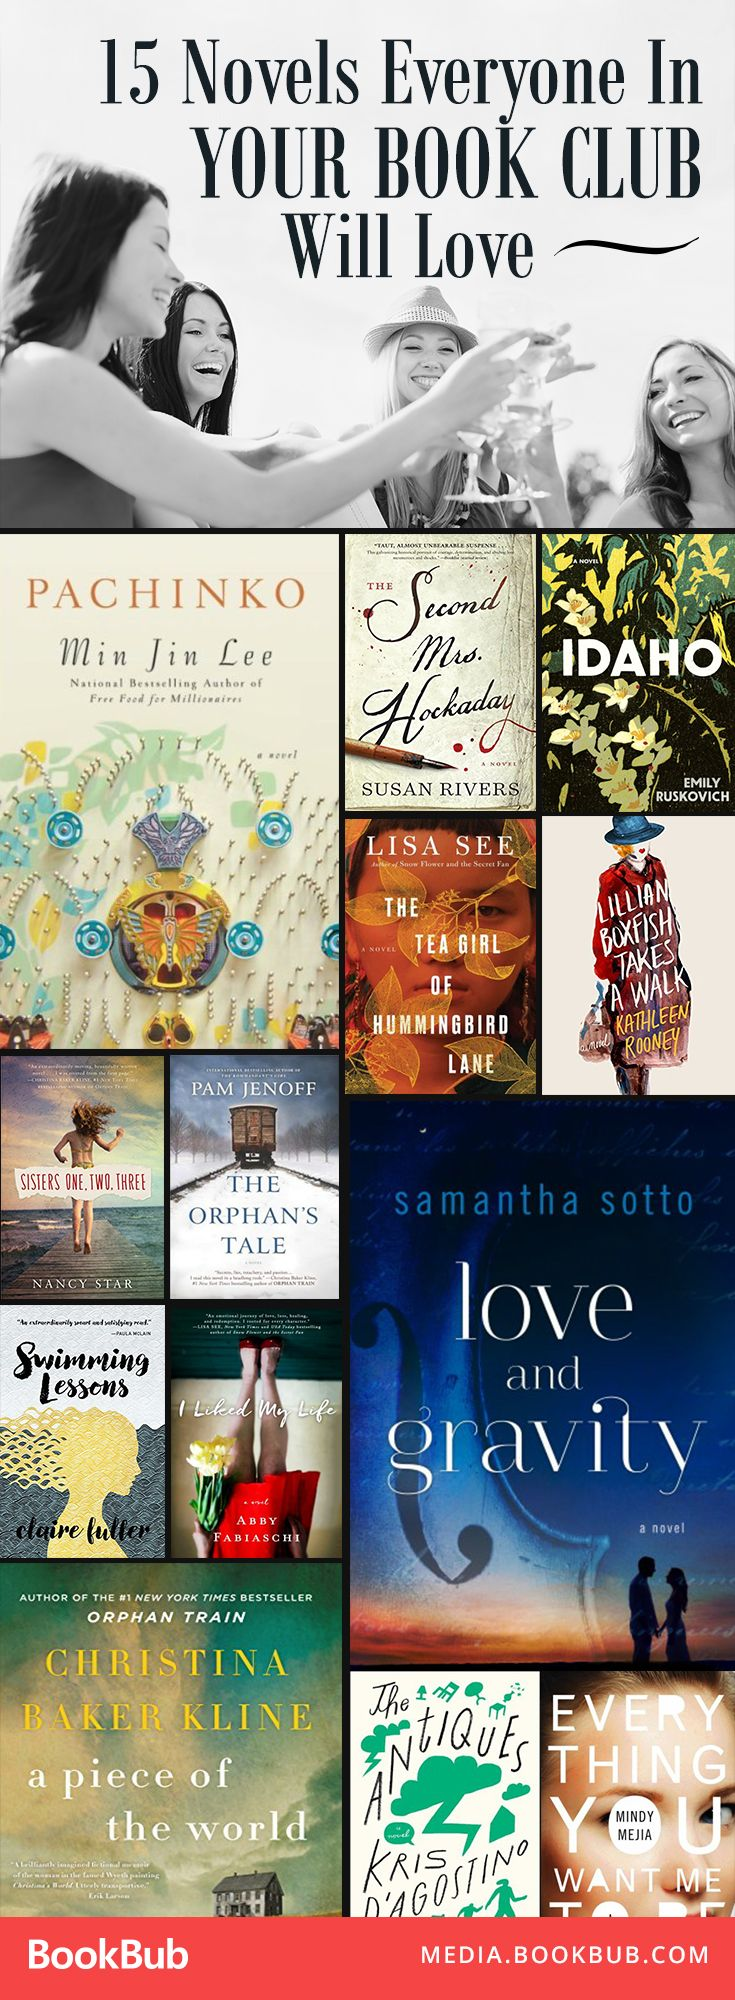 These book club ideas are must reads. Add these to your 2017 reading list!